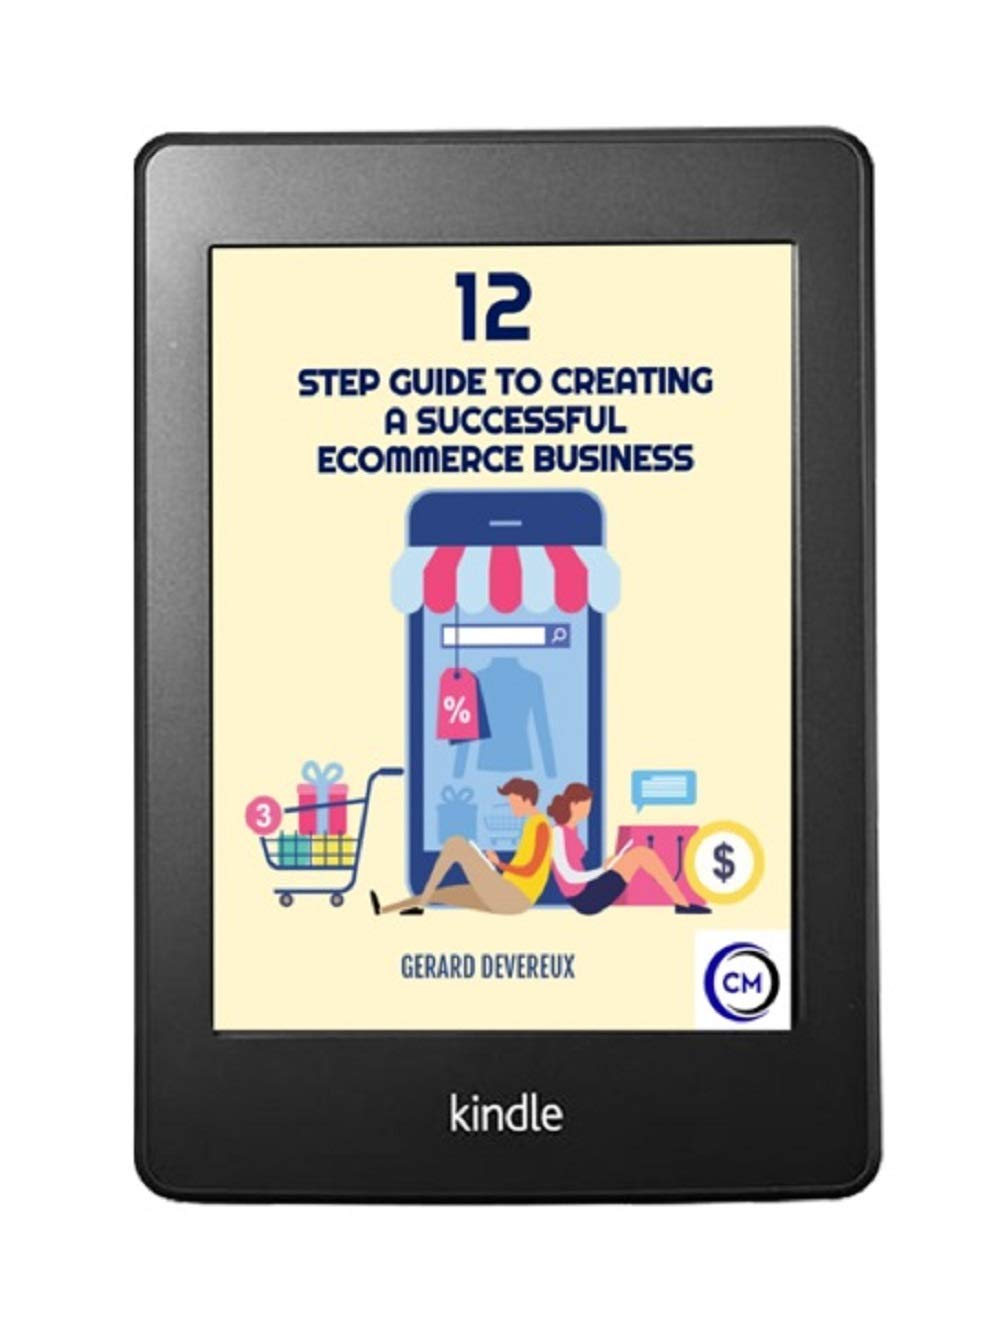 12 STEP GUIDE ON HOW TO CREATE A SUCCESSFUL ECOMMERCE BUSINESS: EVEN IF YOU HAVE ABSOLUTELY NO IDEA OF WHAT TO SELL YET